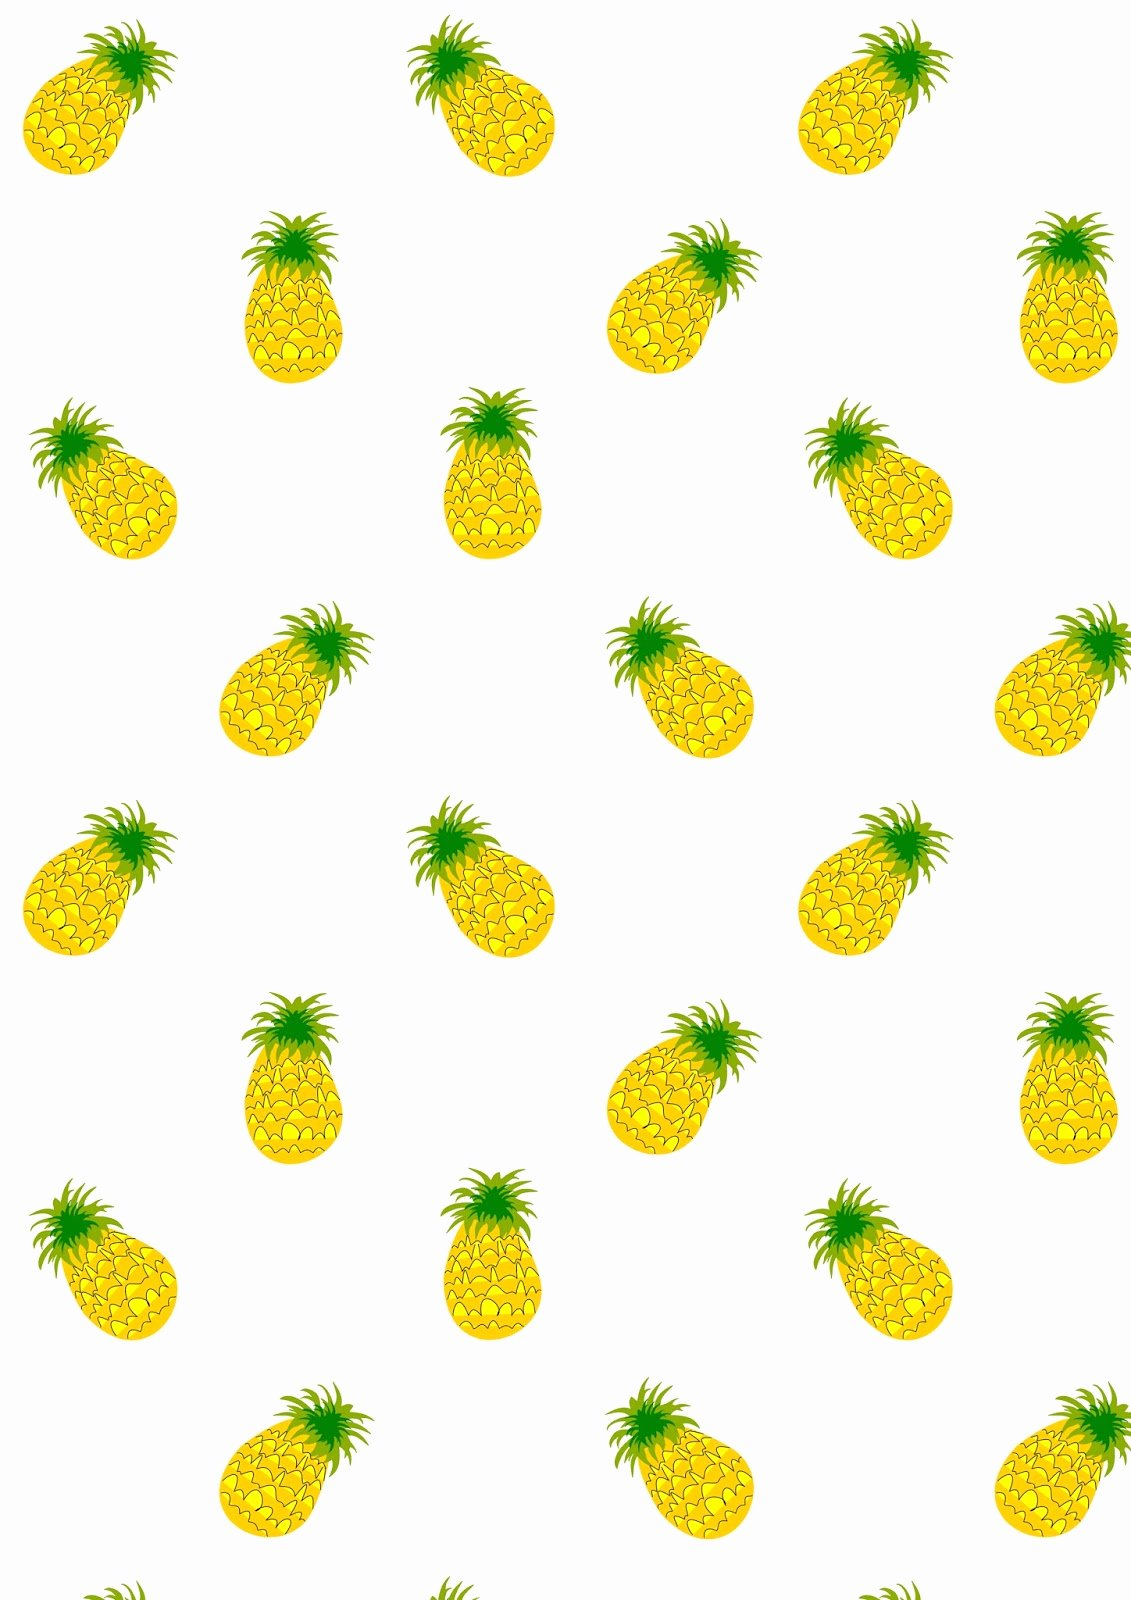 Pineapple Template Printable Best Of Free Digital Pineapple Scrapbooking Paper Ausdruckbares